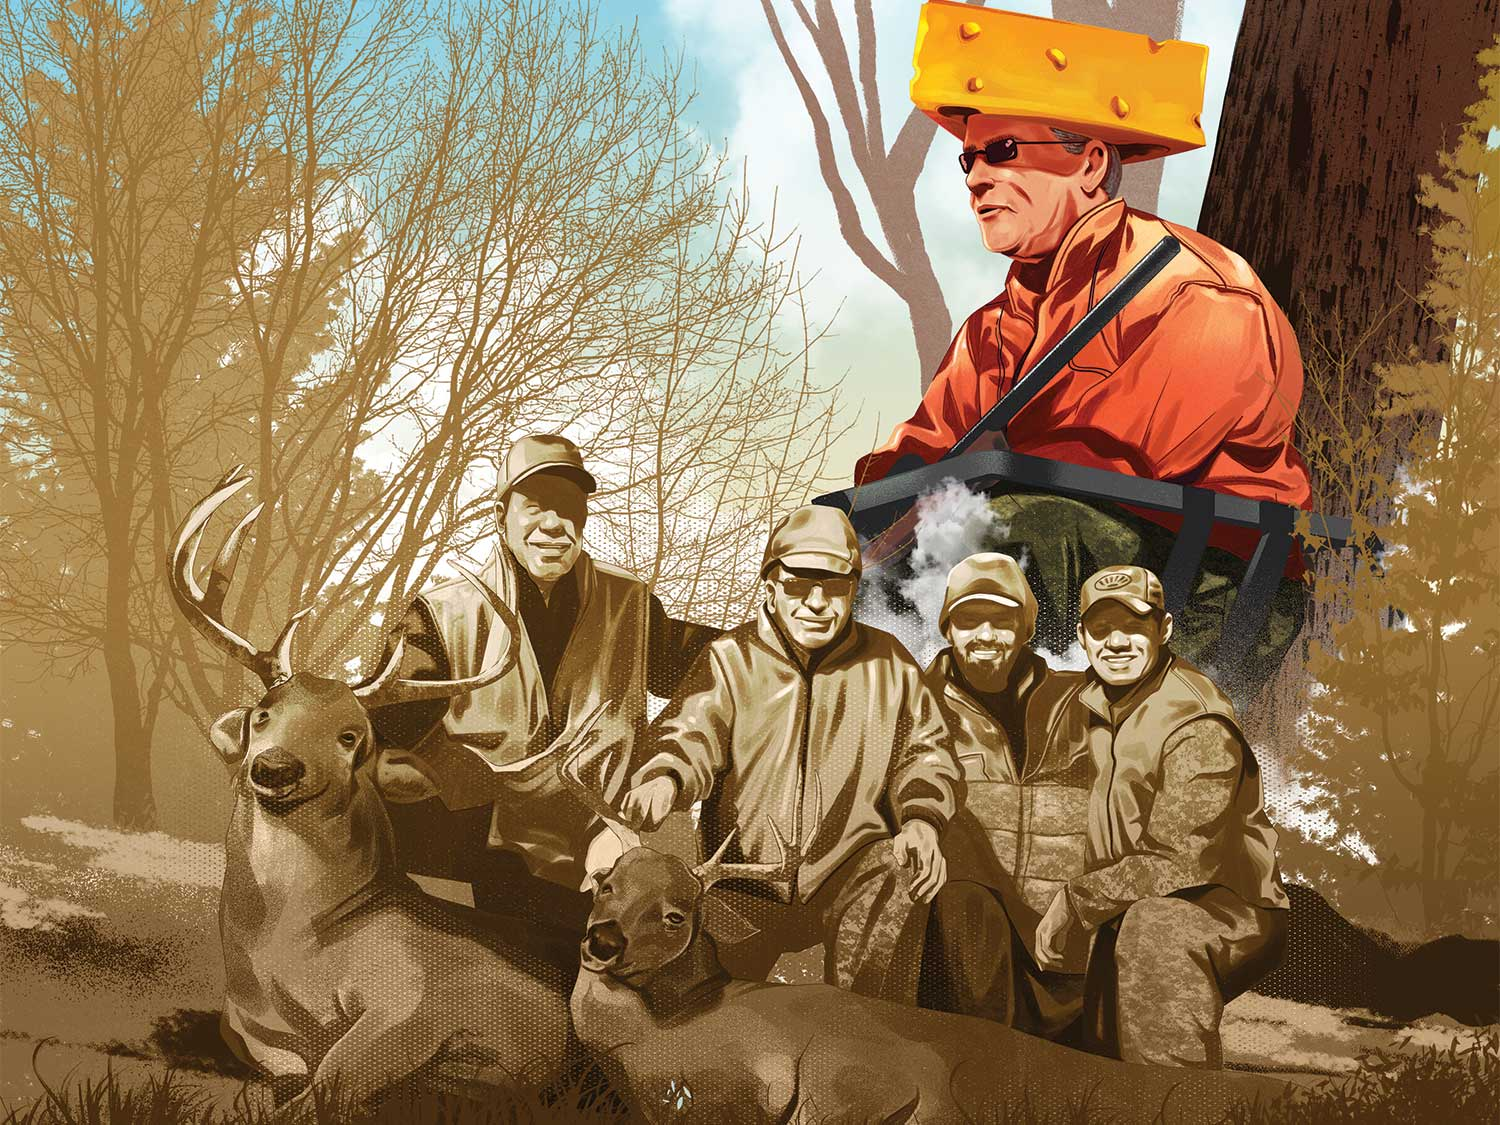 Illustration of hunters kneeling behind deer while one wears a cheese wedge shaped hat.